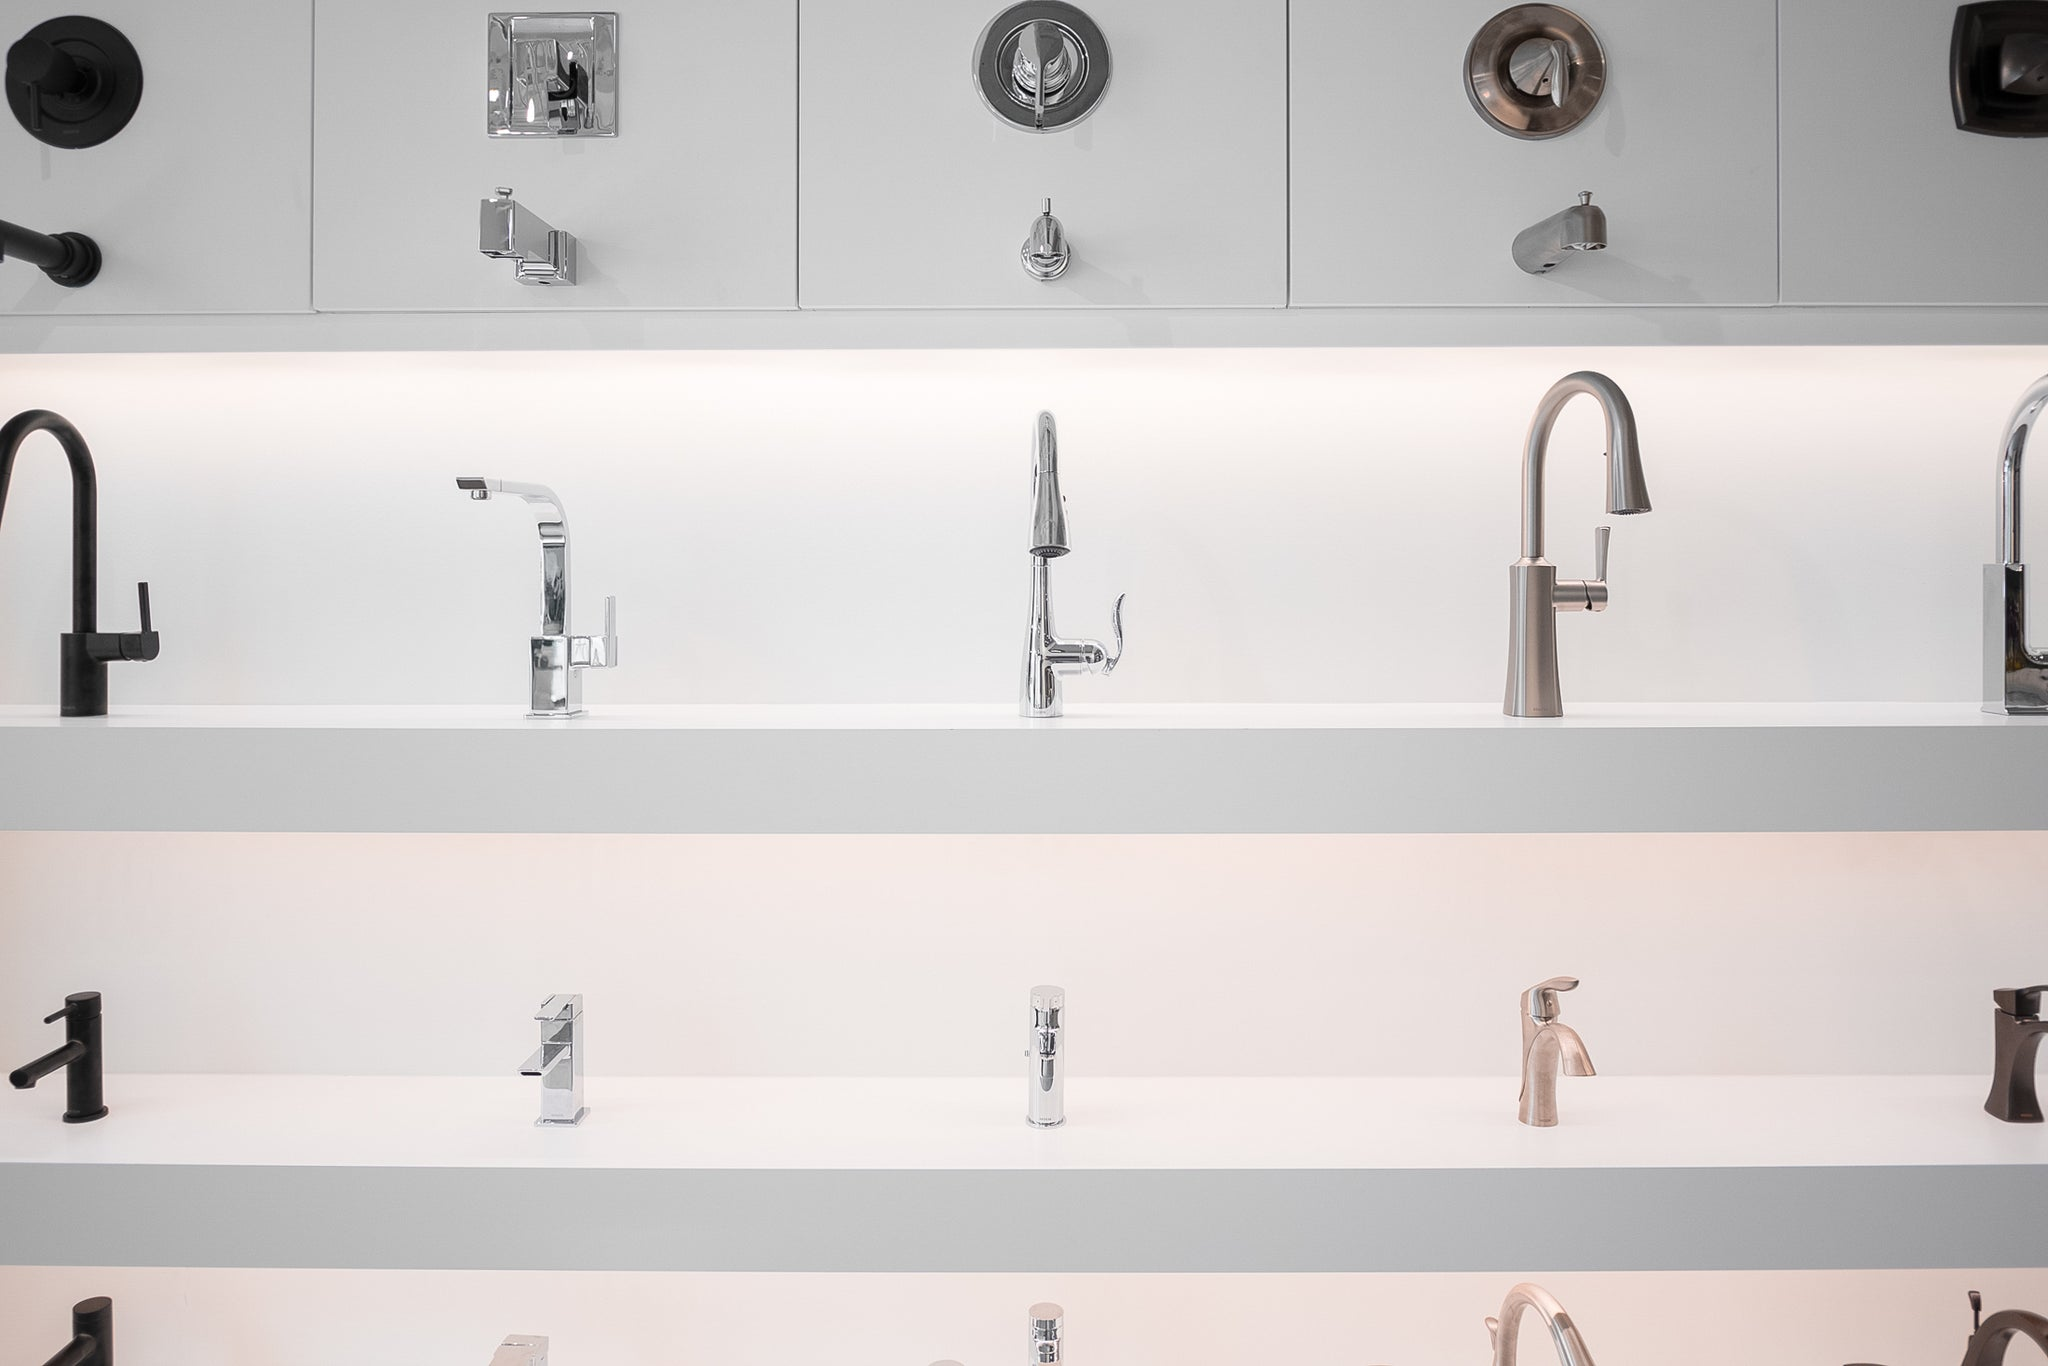 eQ Home Design Studio bathroom faucet and tap models.